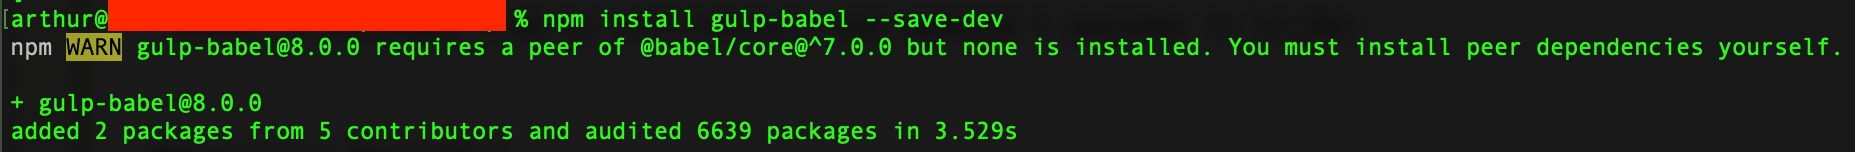 How to fix: npm WARN gulp-babel@8.0.0 requires a peer of @babel/core@